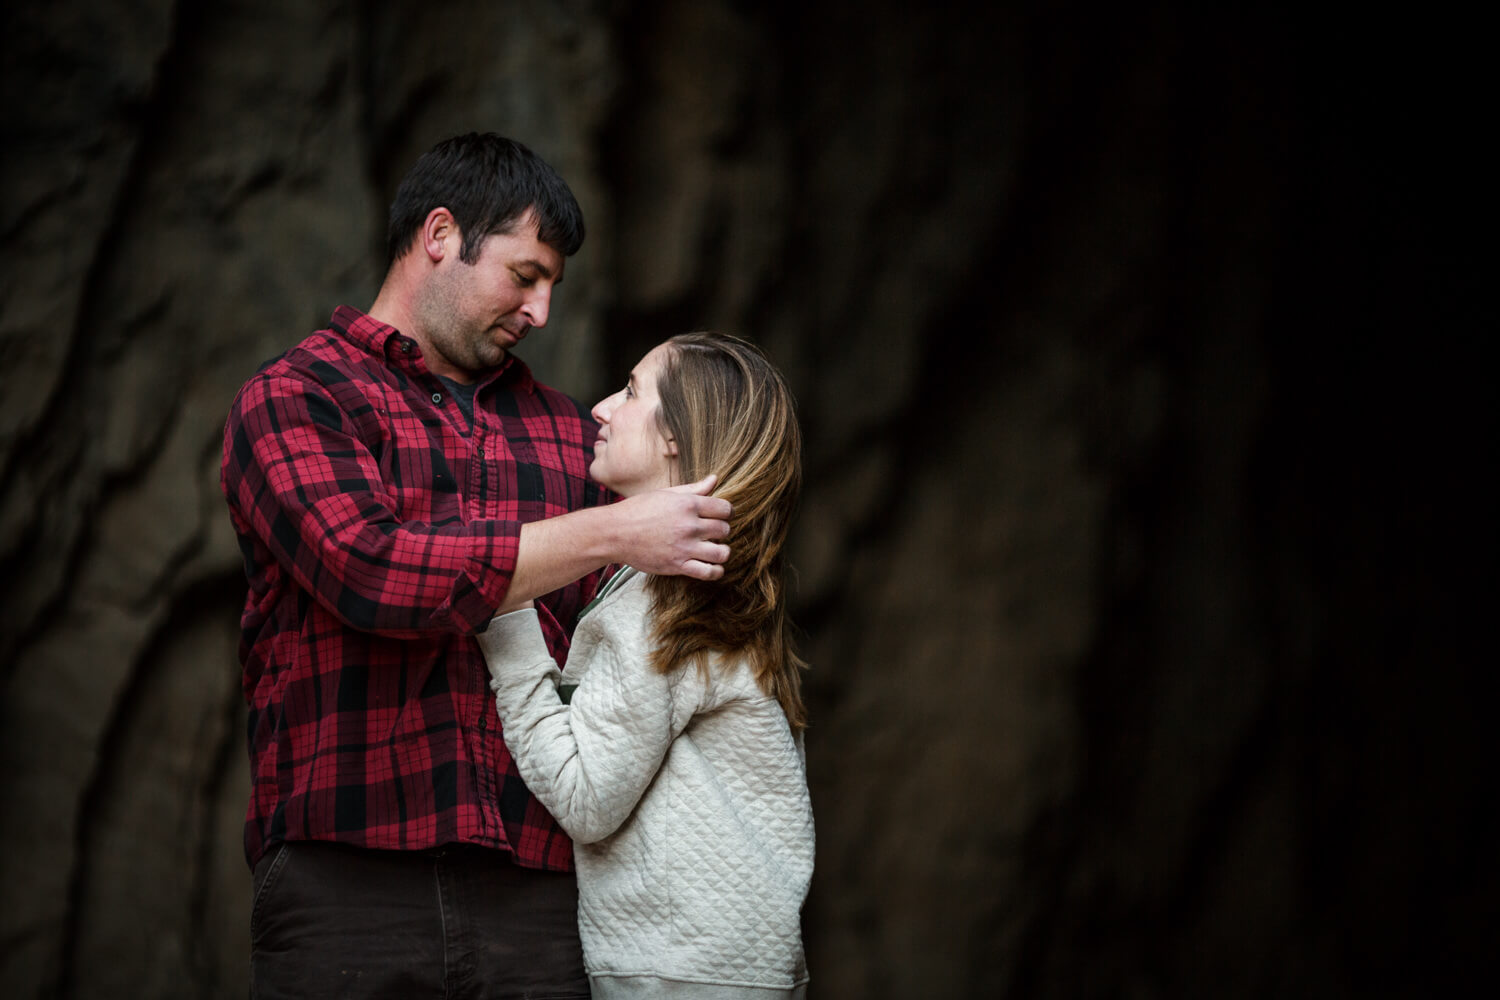 Couple embracing. Man in red flannel shirt, woman in patagonia fleece with rock bridge in background.